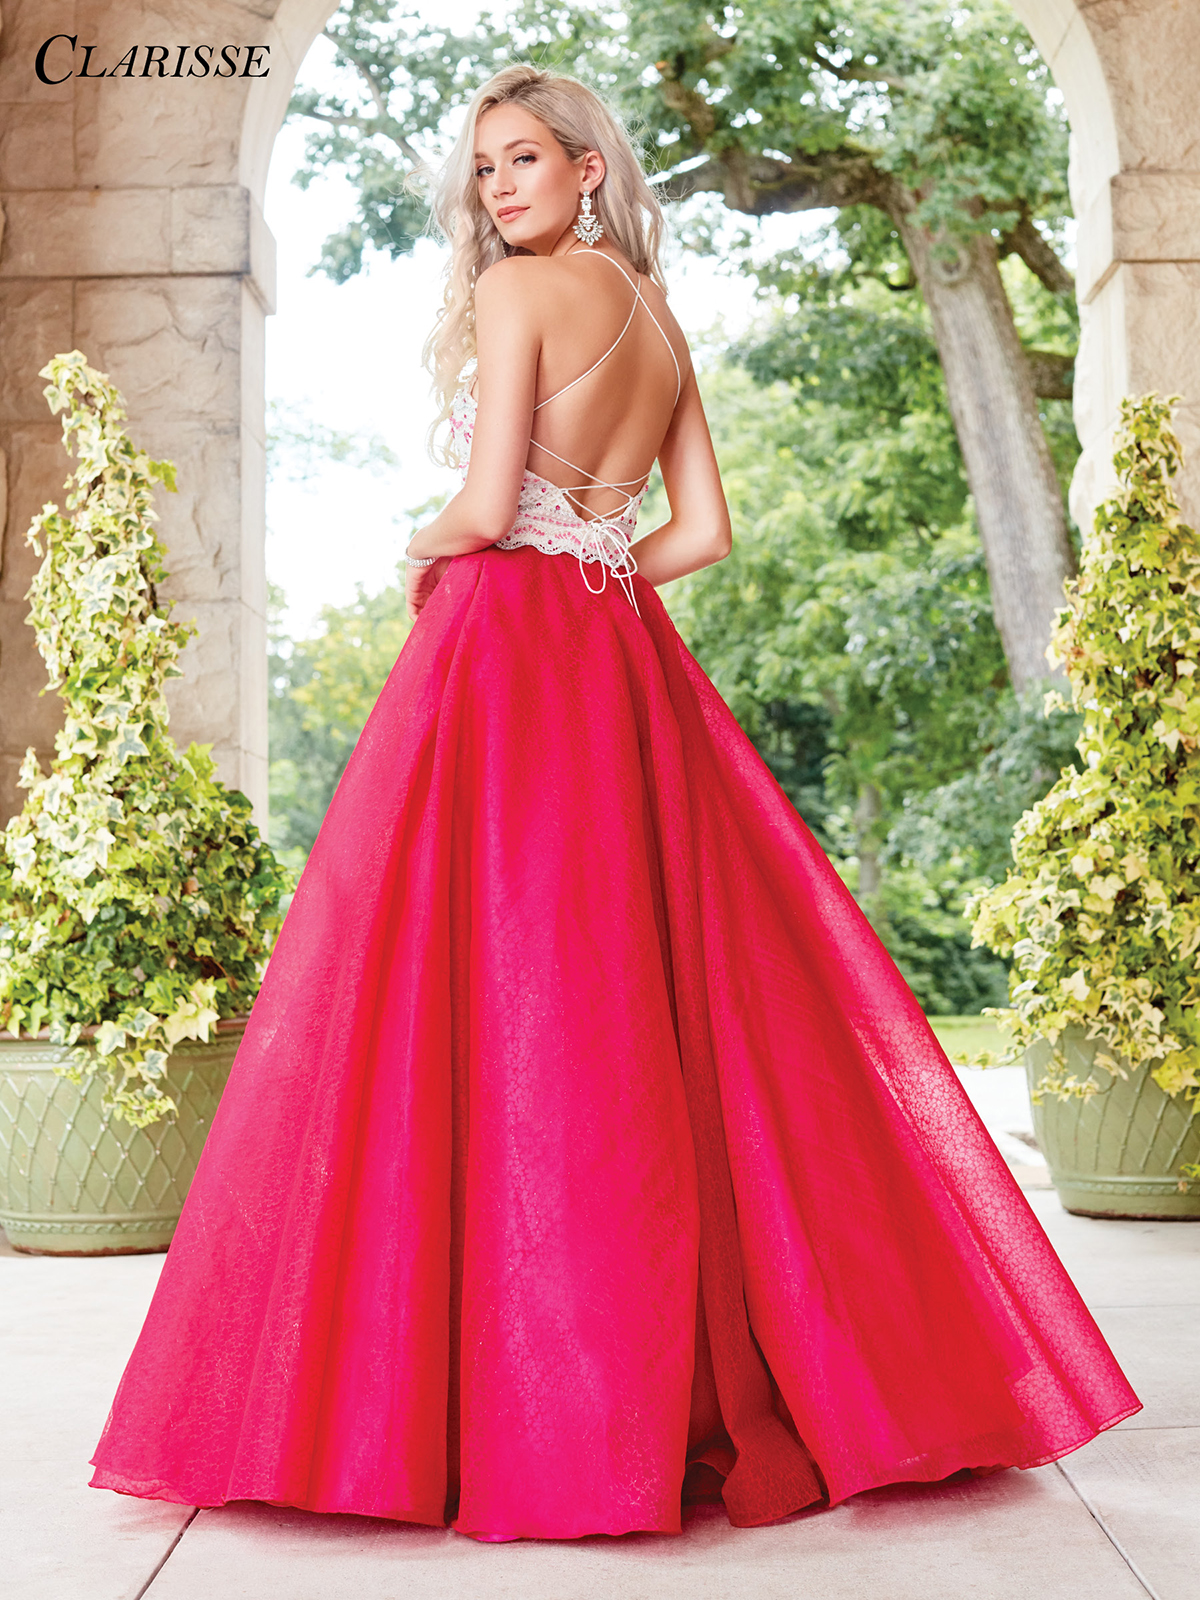 Lace Ball Gown Prom Dress